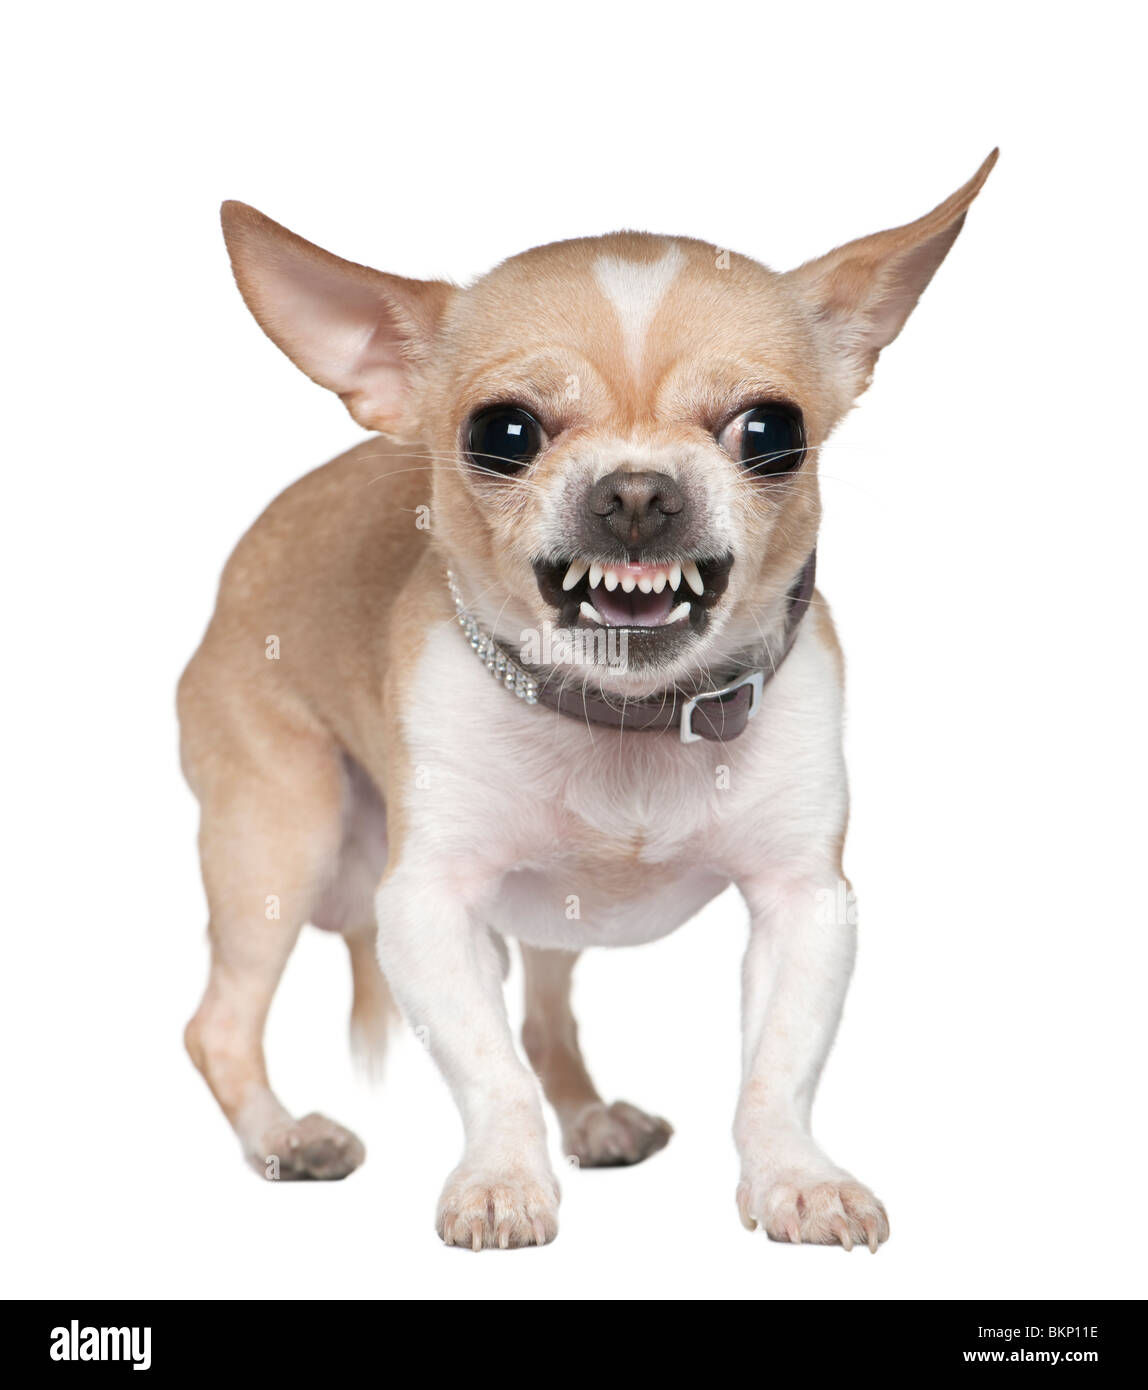 Angry Chihuahua growling, 2 years old, in front of white background - Stock Image